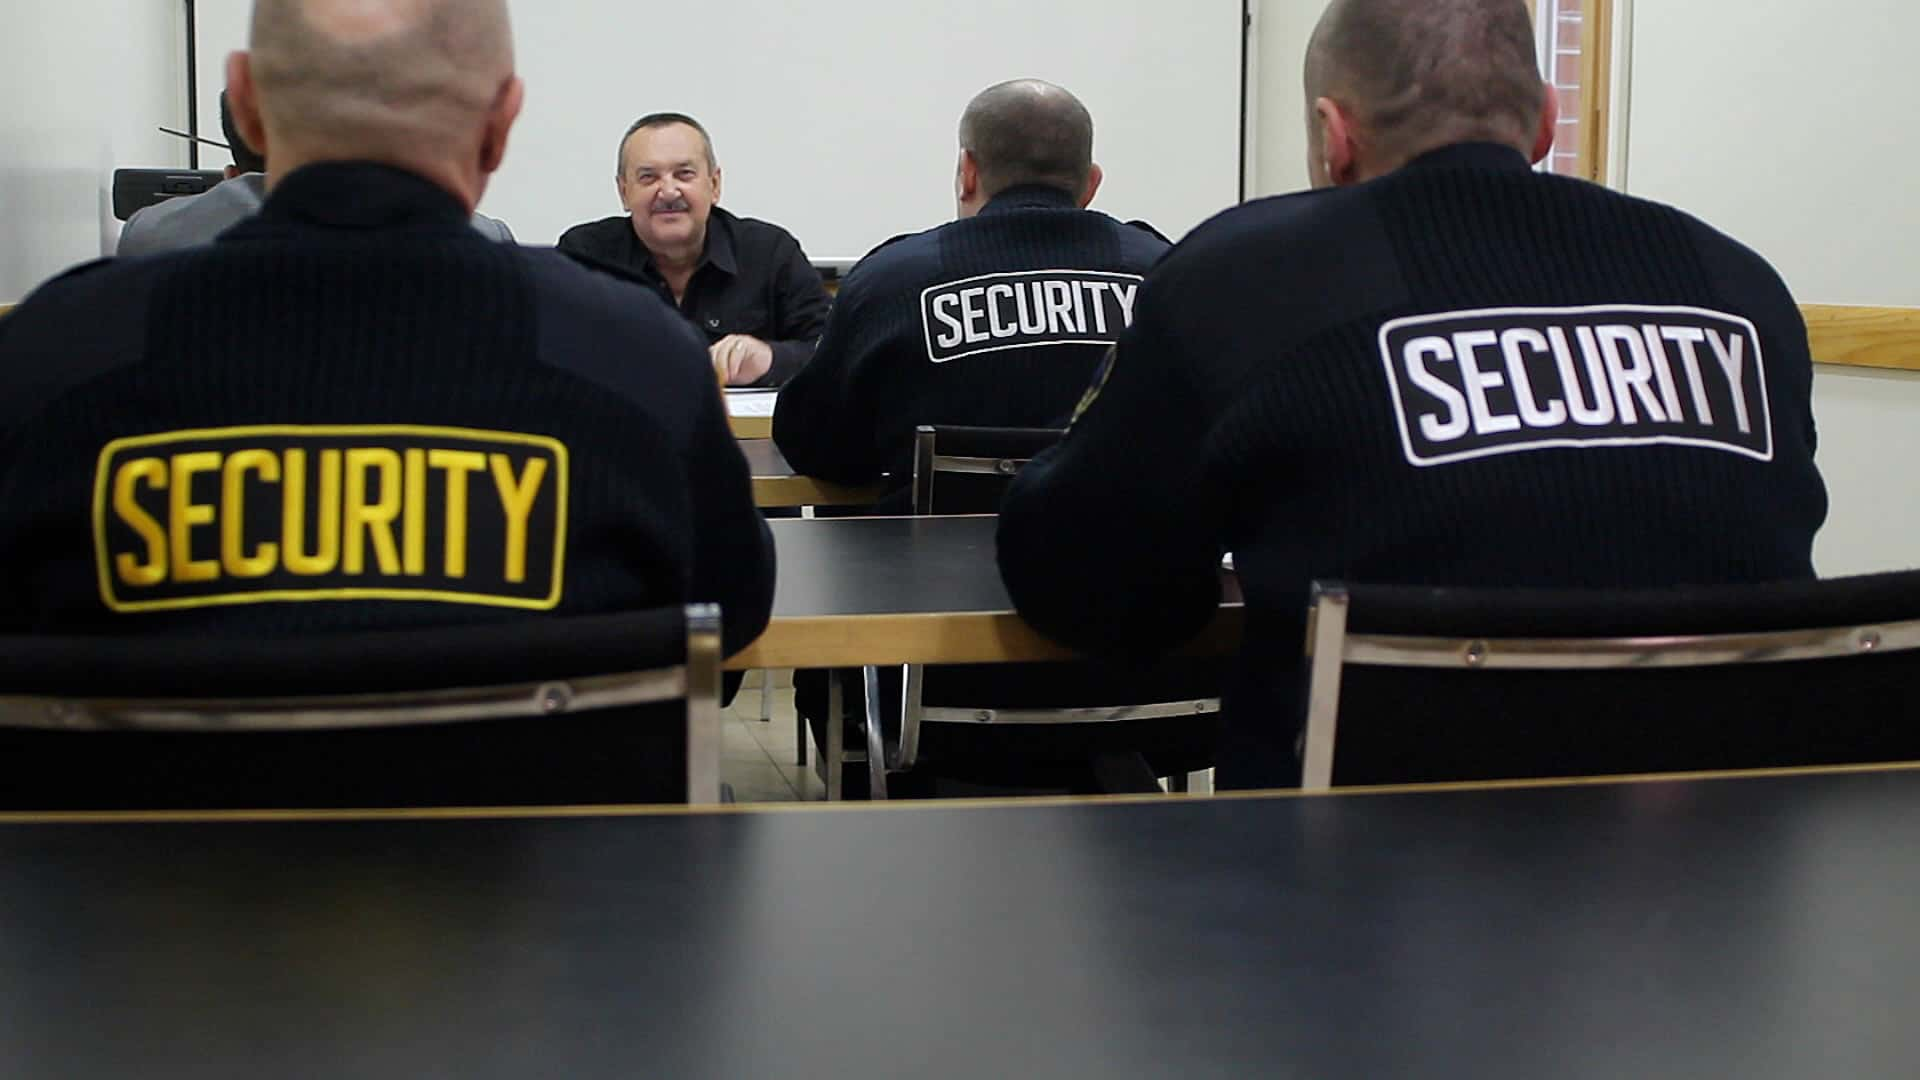 Security Guard Training NYC International Security Services, Inc.